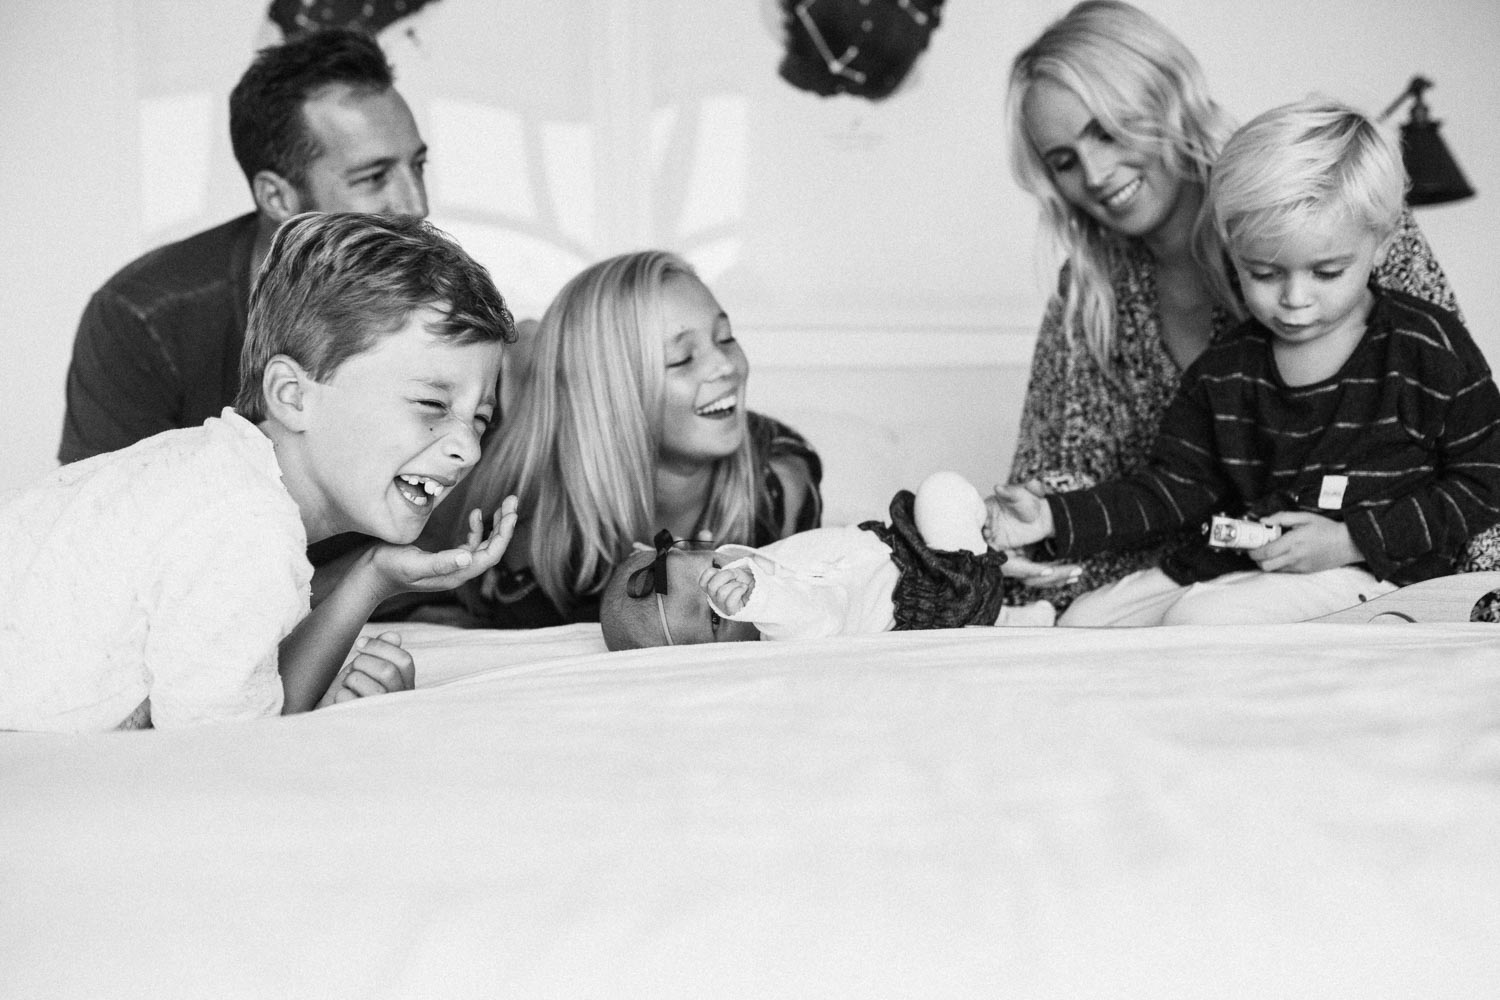 candid-black-and-white-family-photo-during-in-home-session-with-jen-fairchild-photography-in-encinitas-california